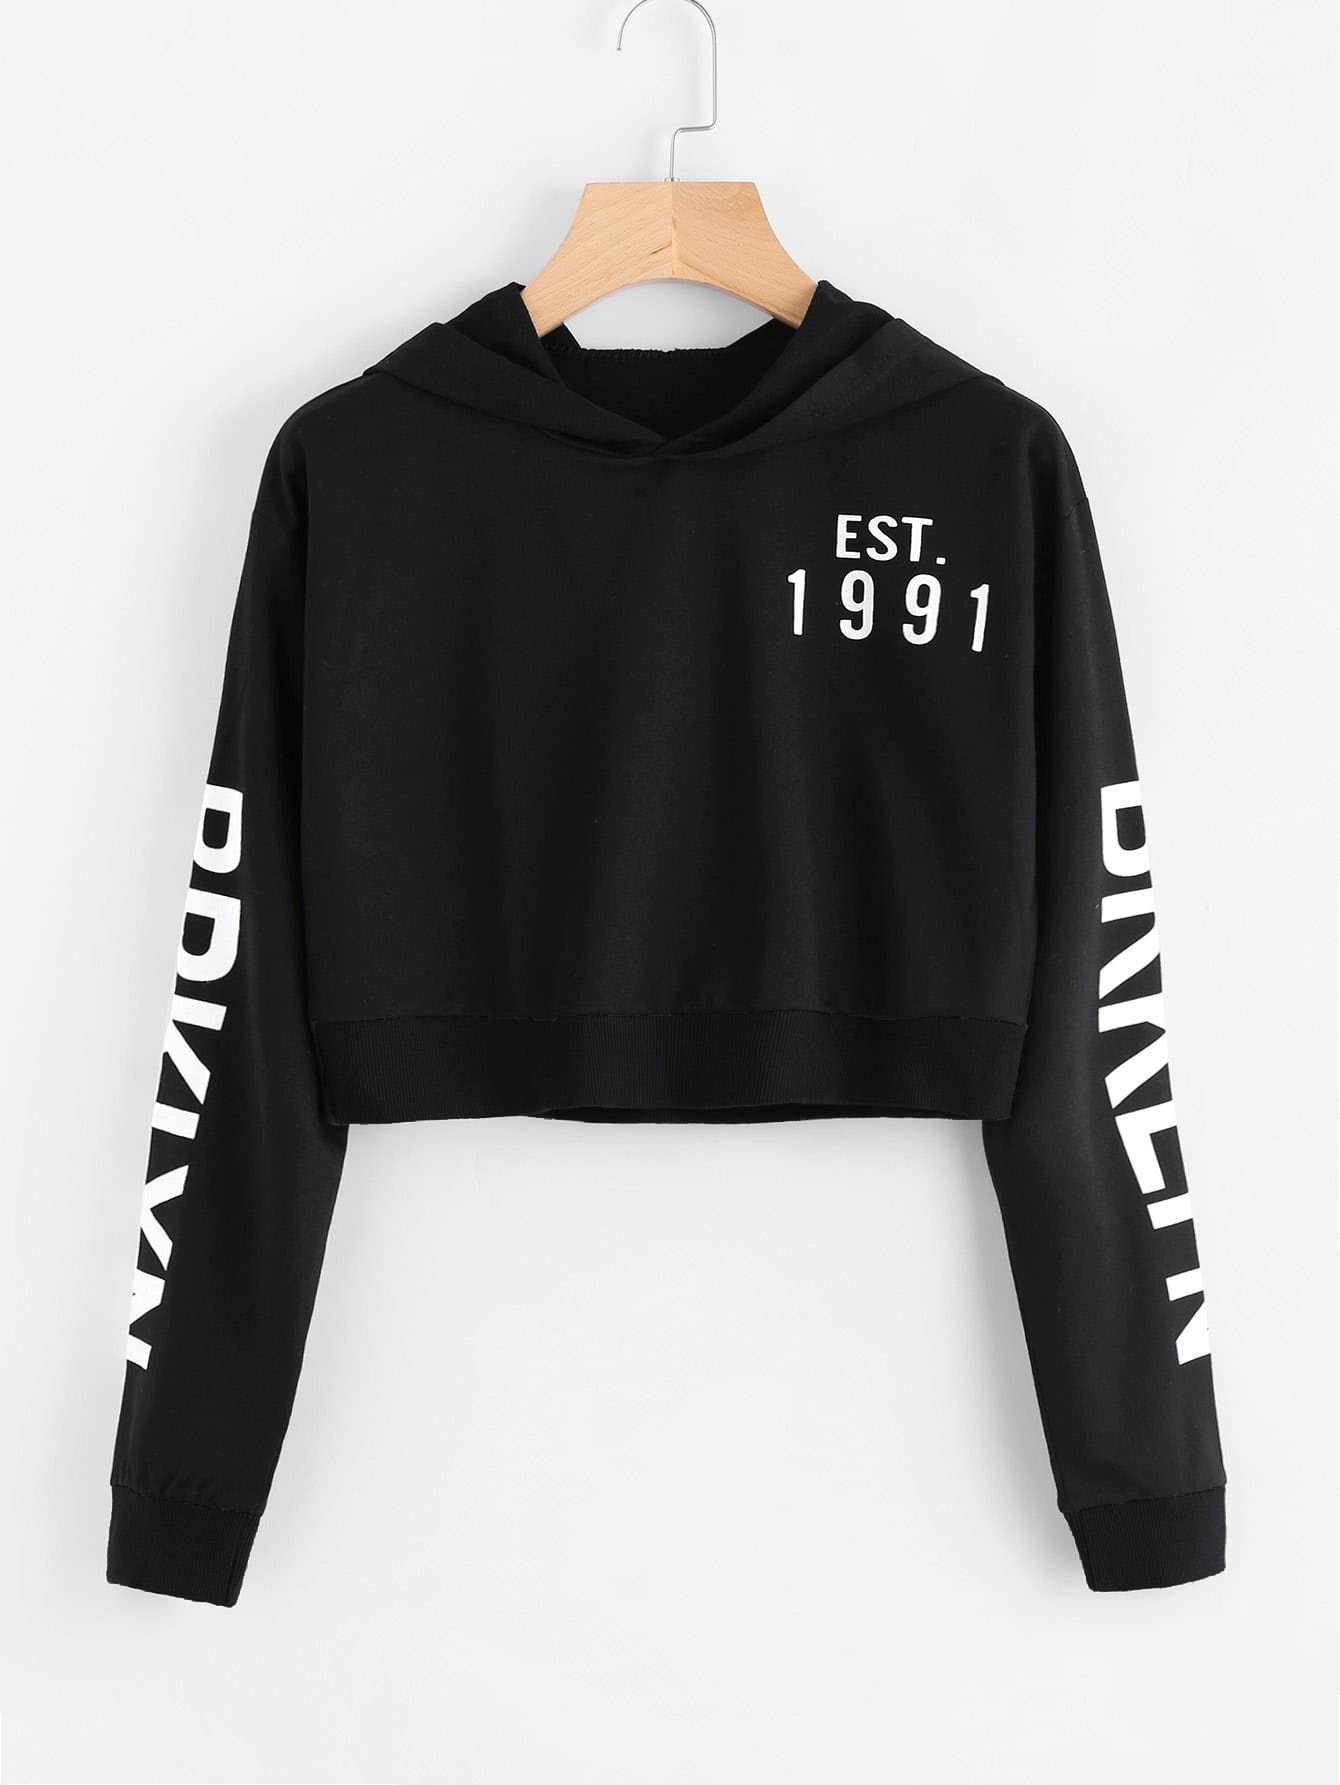 Letter Printed Crop Sweatshirt